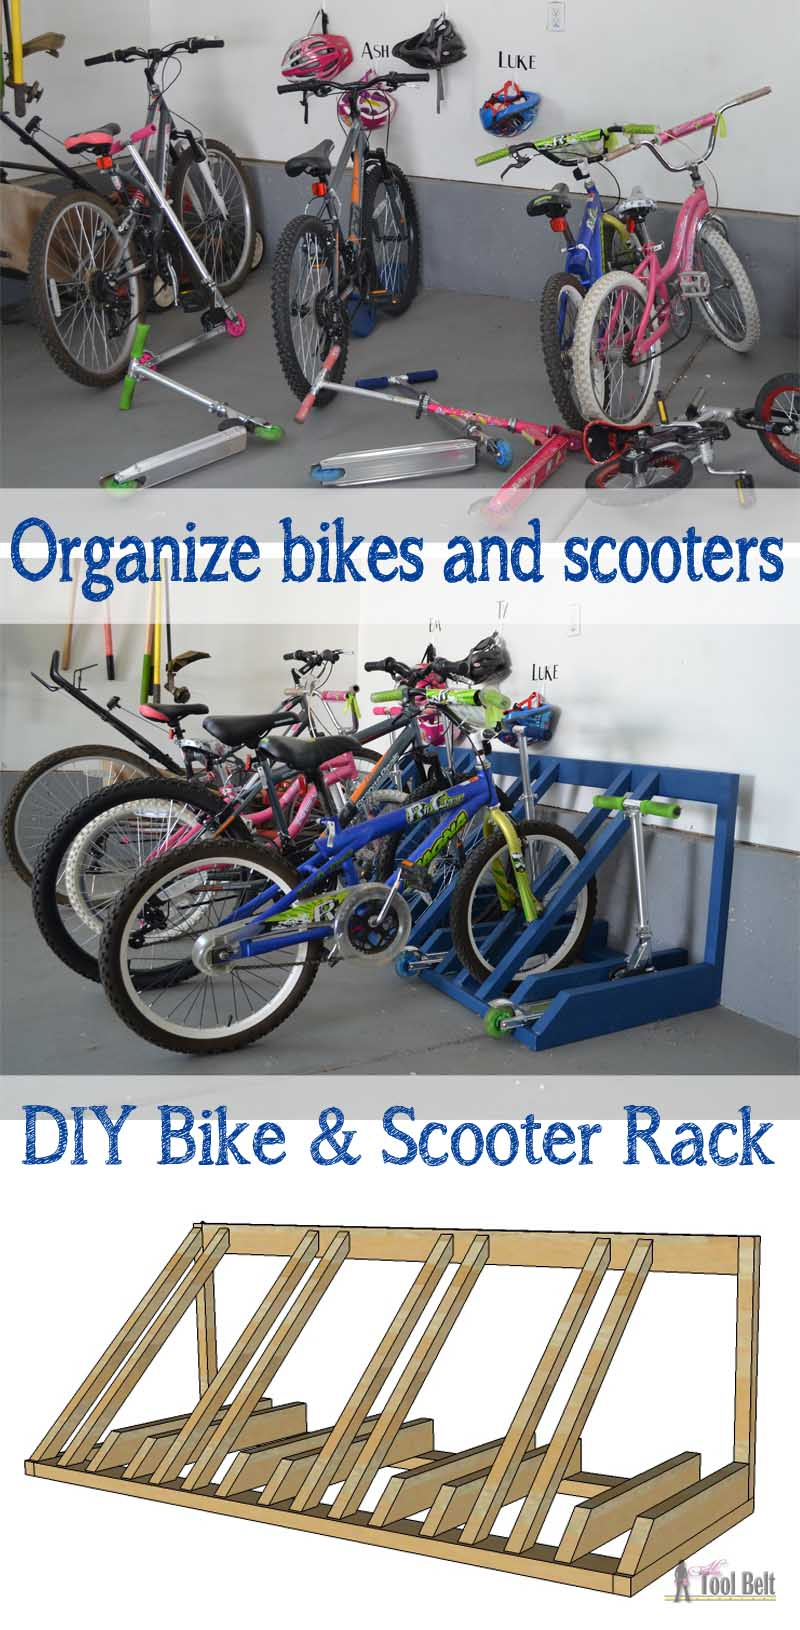 bike storage ideas diy bike and scooter rack tool belt 13105